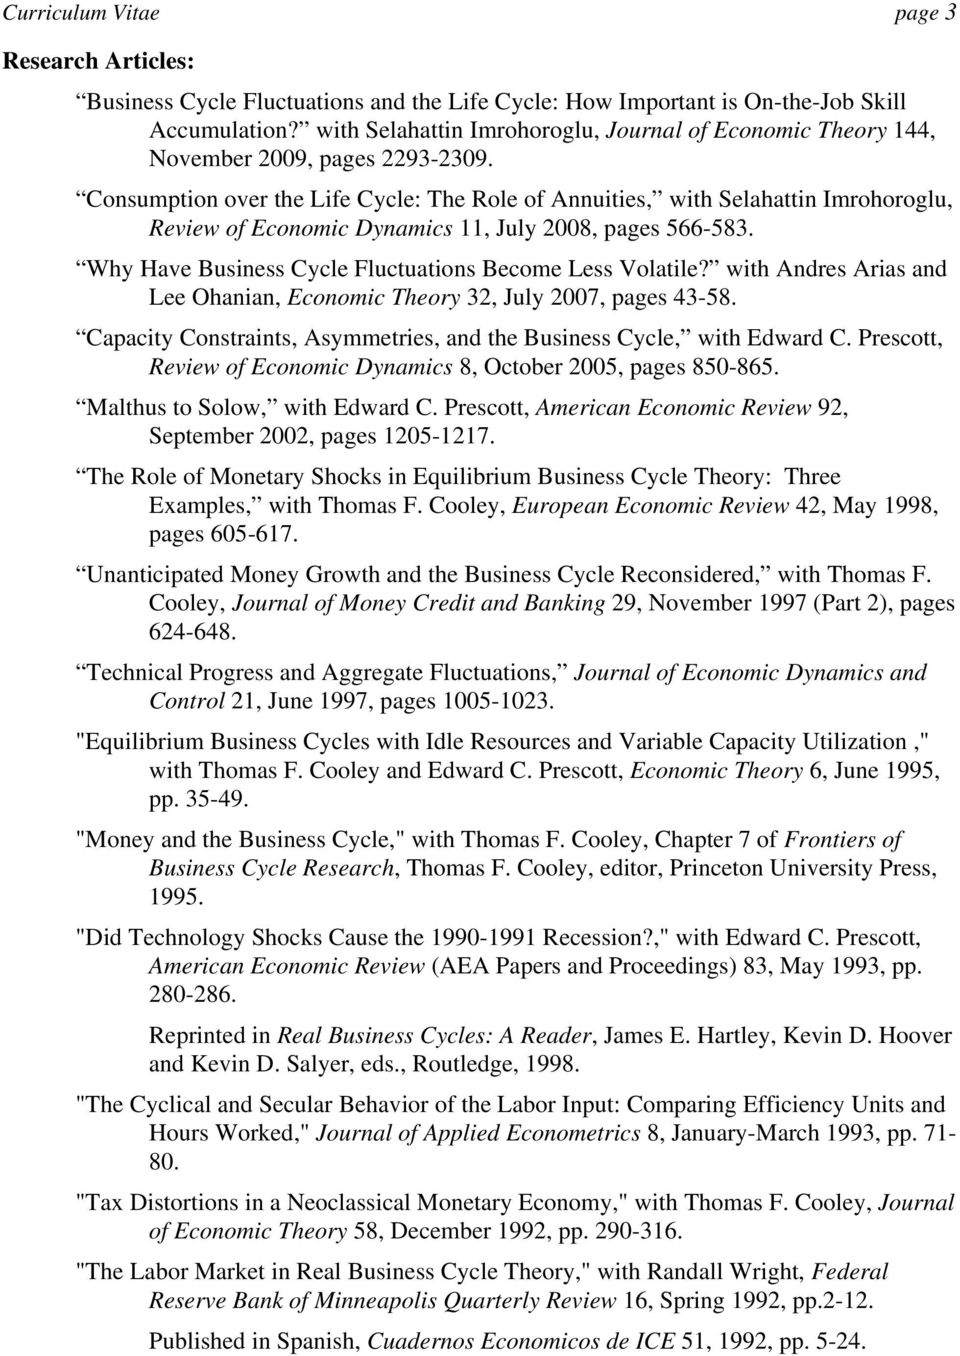 Consumption over the Life Cycle: The Role of Annuities, with Selahattin Imrohoroglu, Review of Economic Dynamics 11, July 2008, pages 566-583.